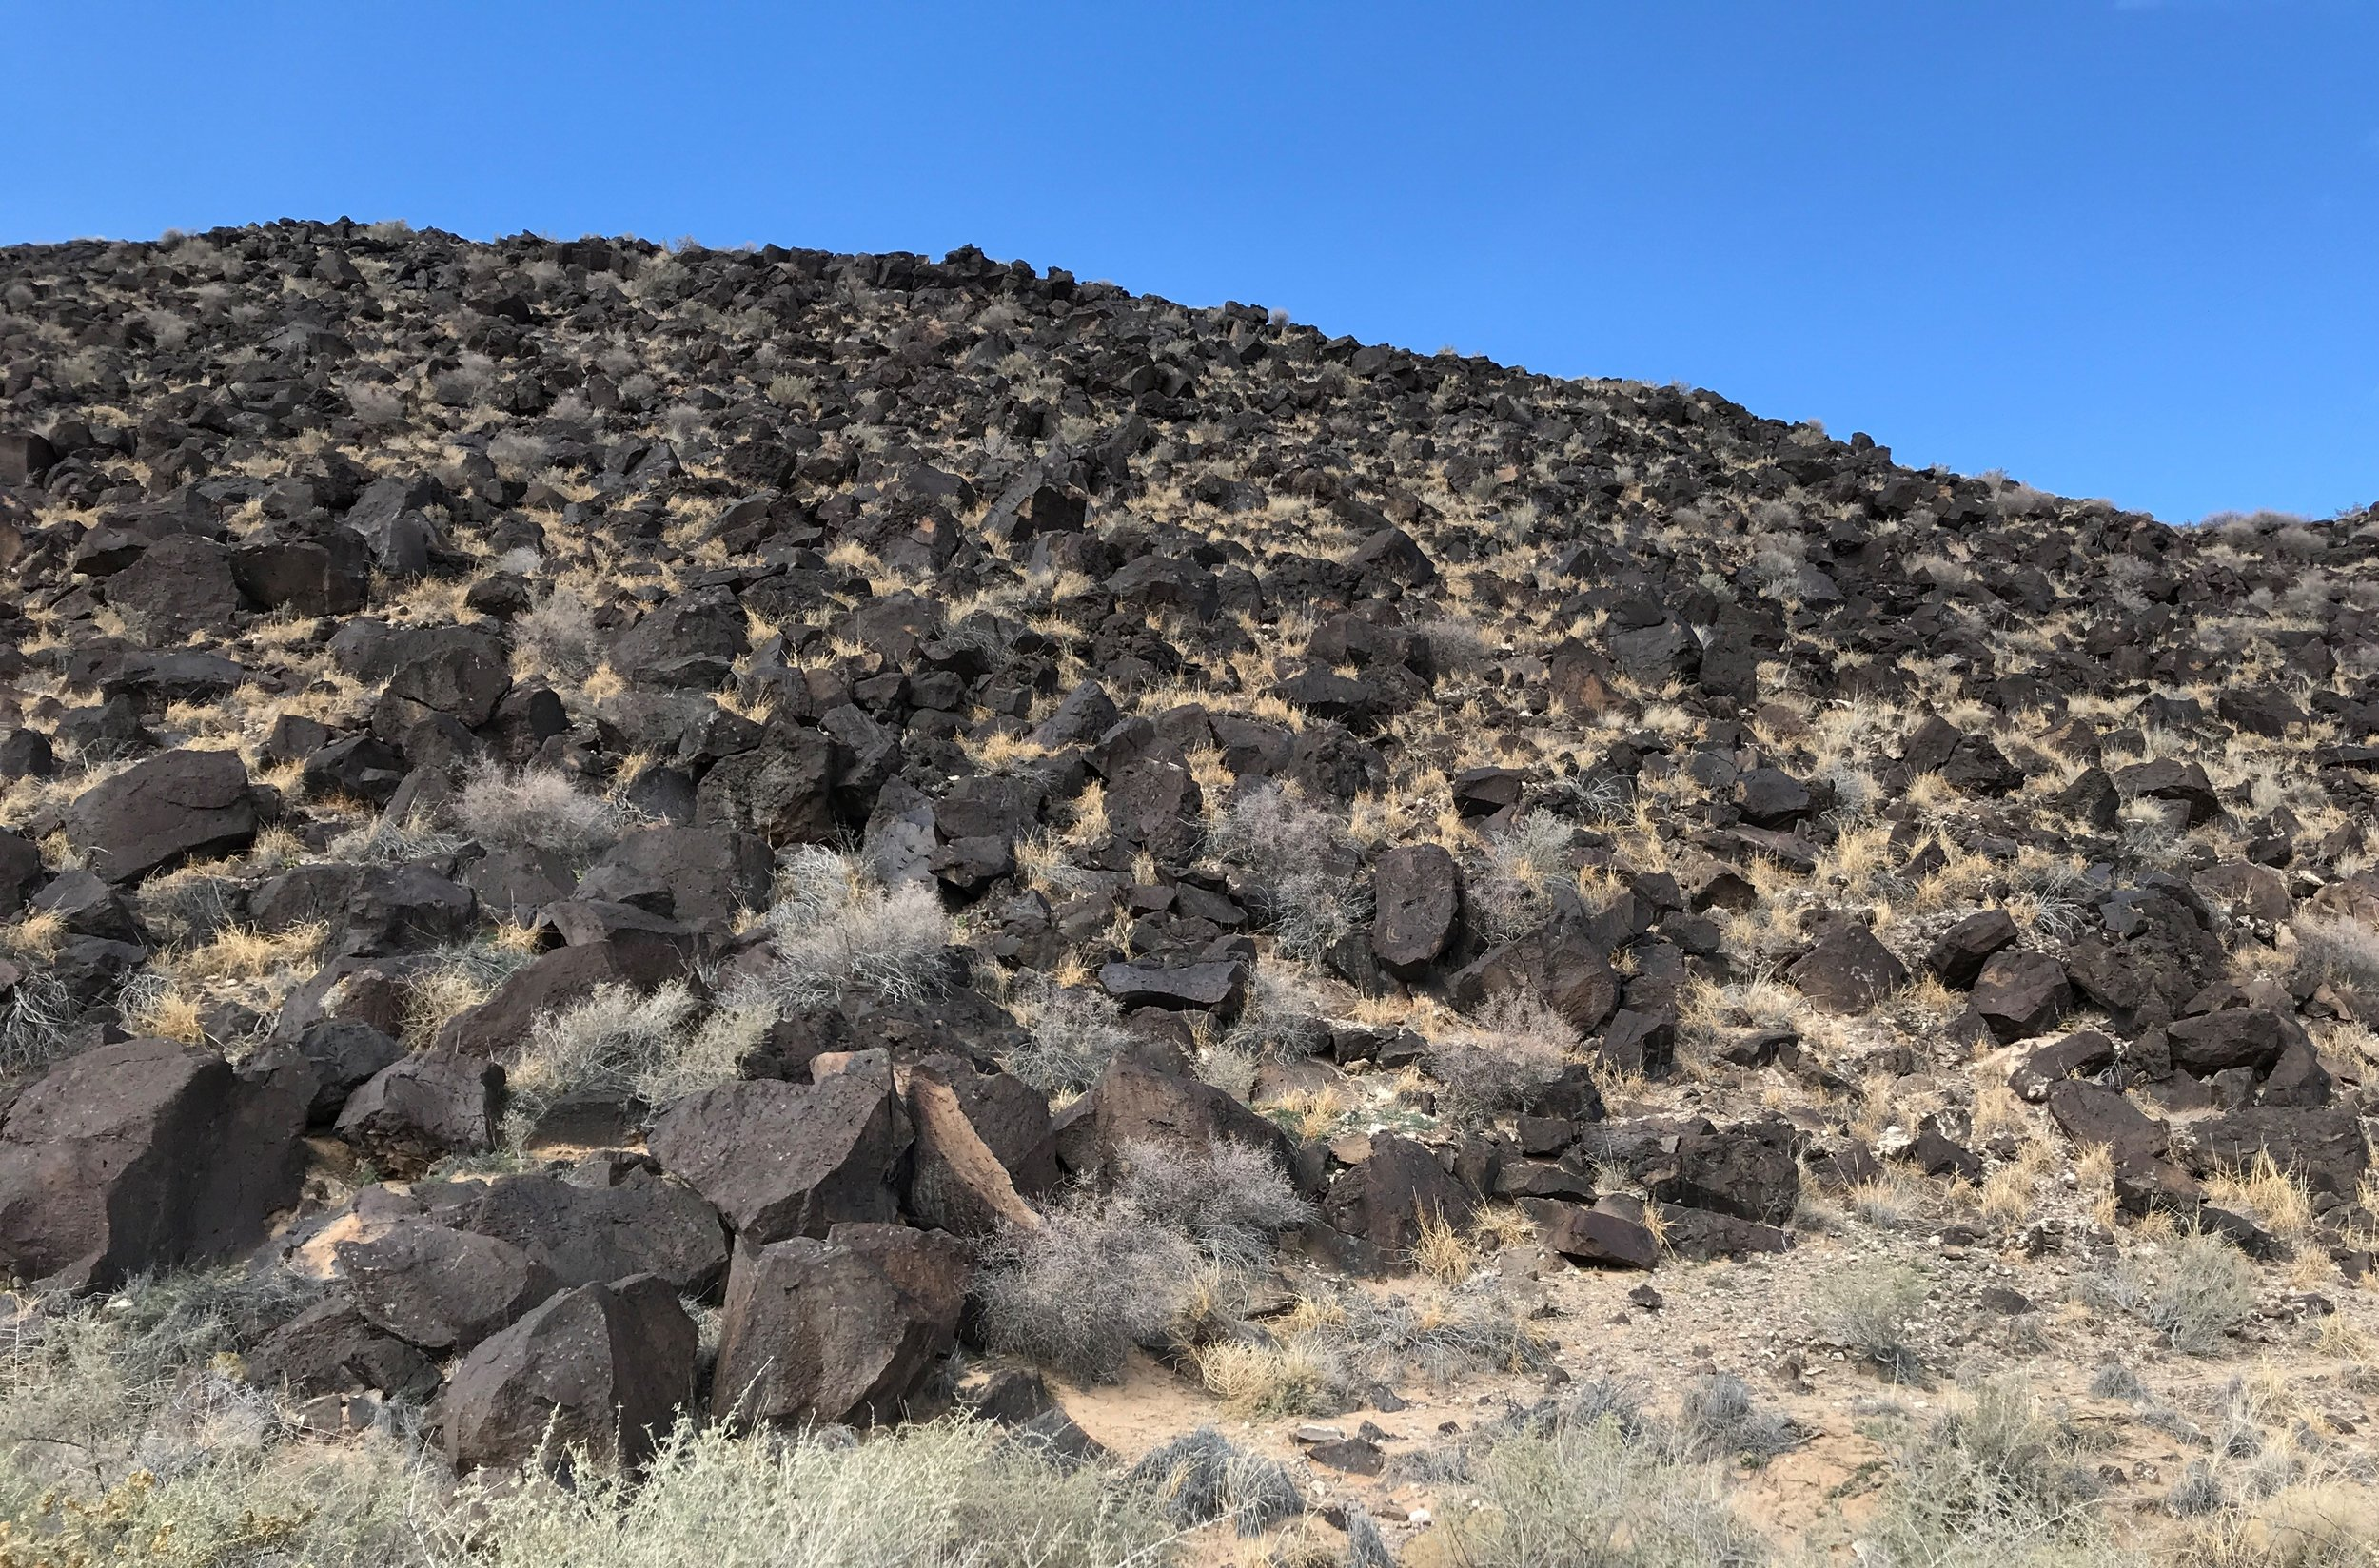 Rinconada Canyon is the remnants of volcanic eruptions 200,000 years ago